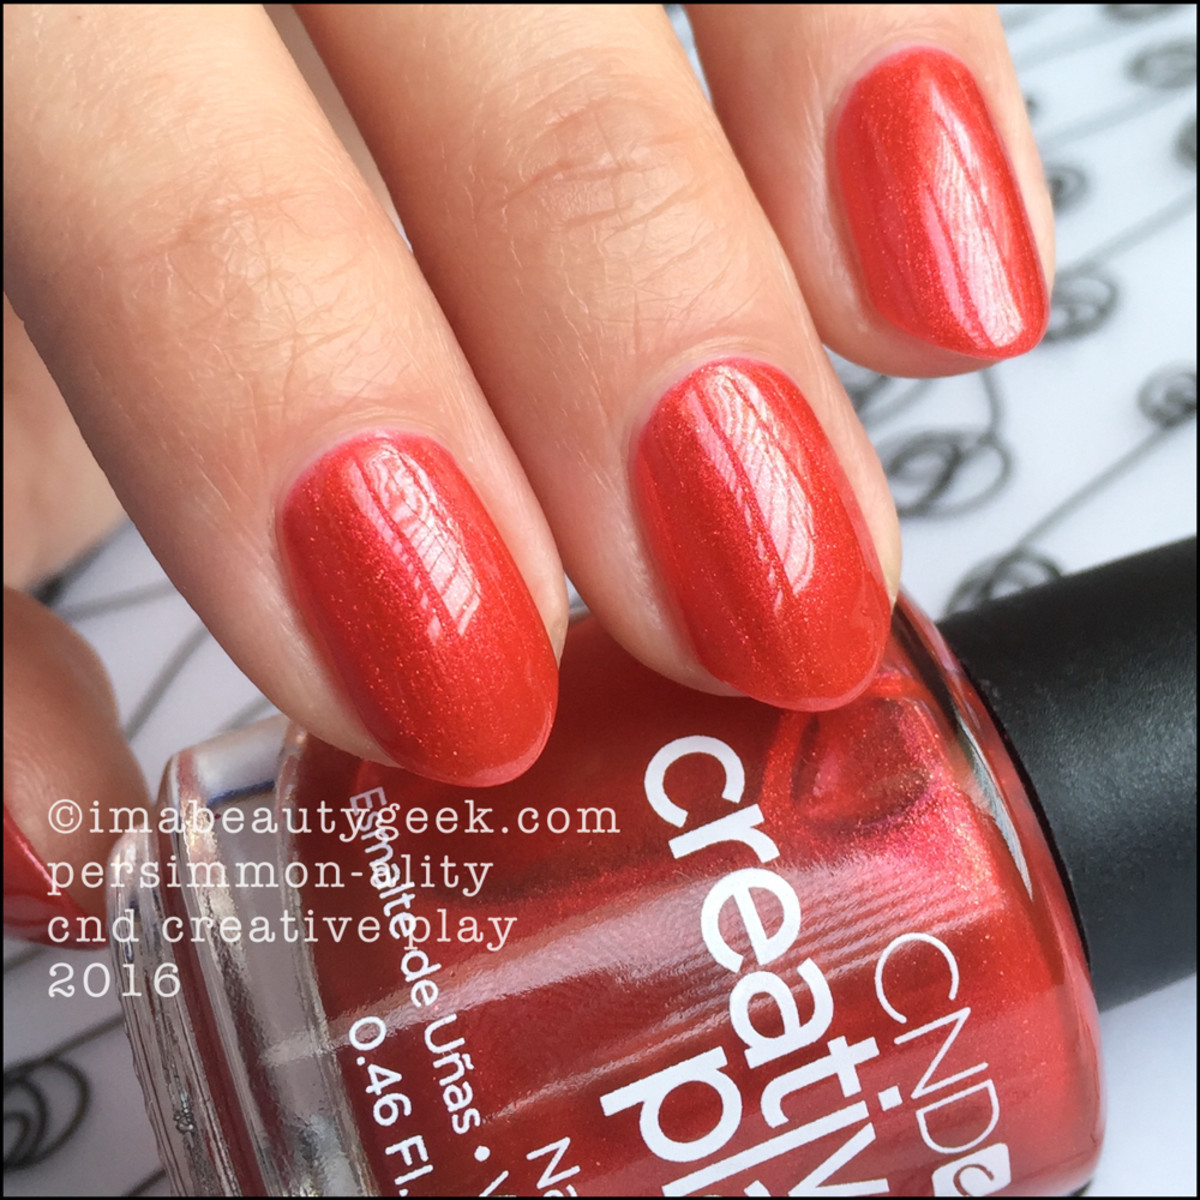 CND Creative Play Persimmonality_CND Creative Play Nail Polish Swatches